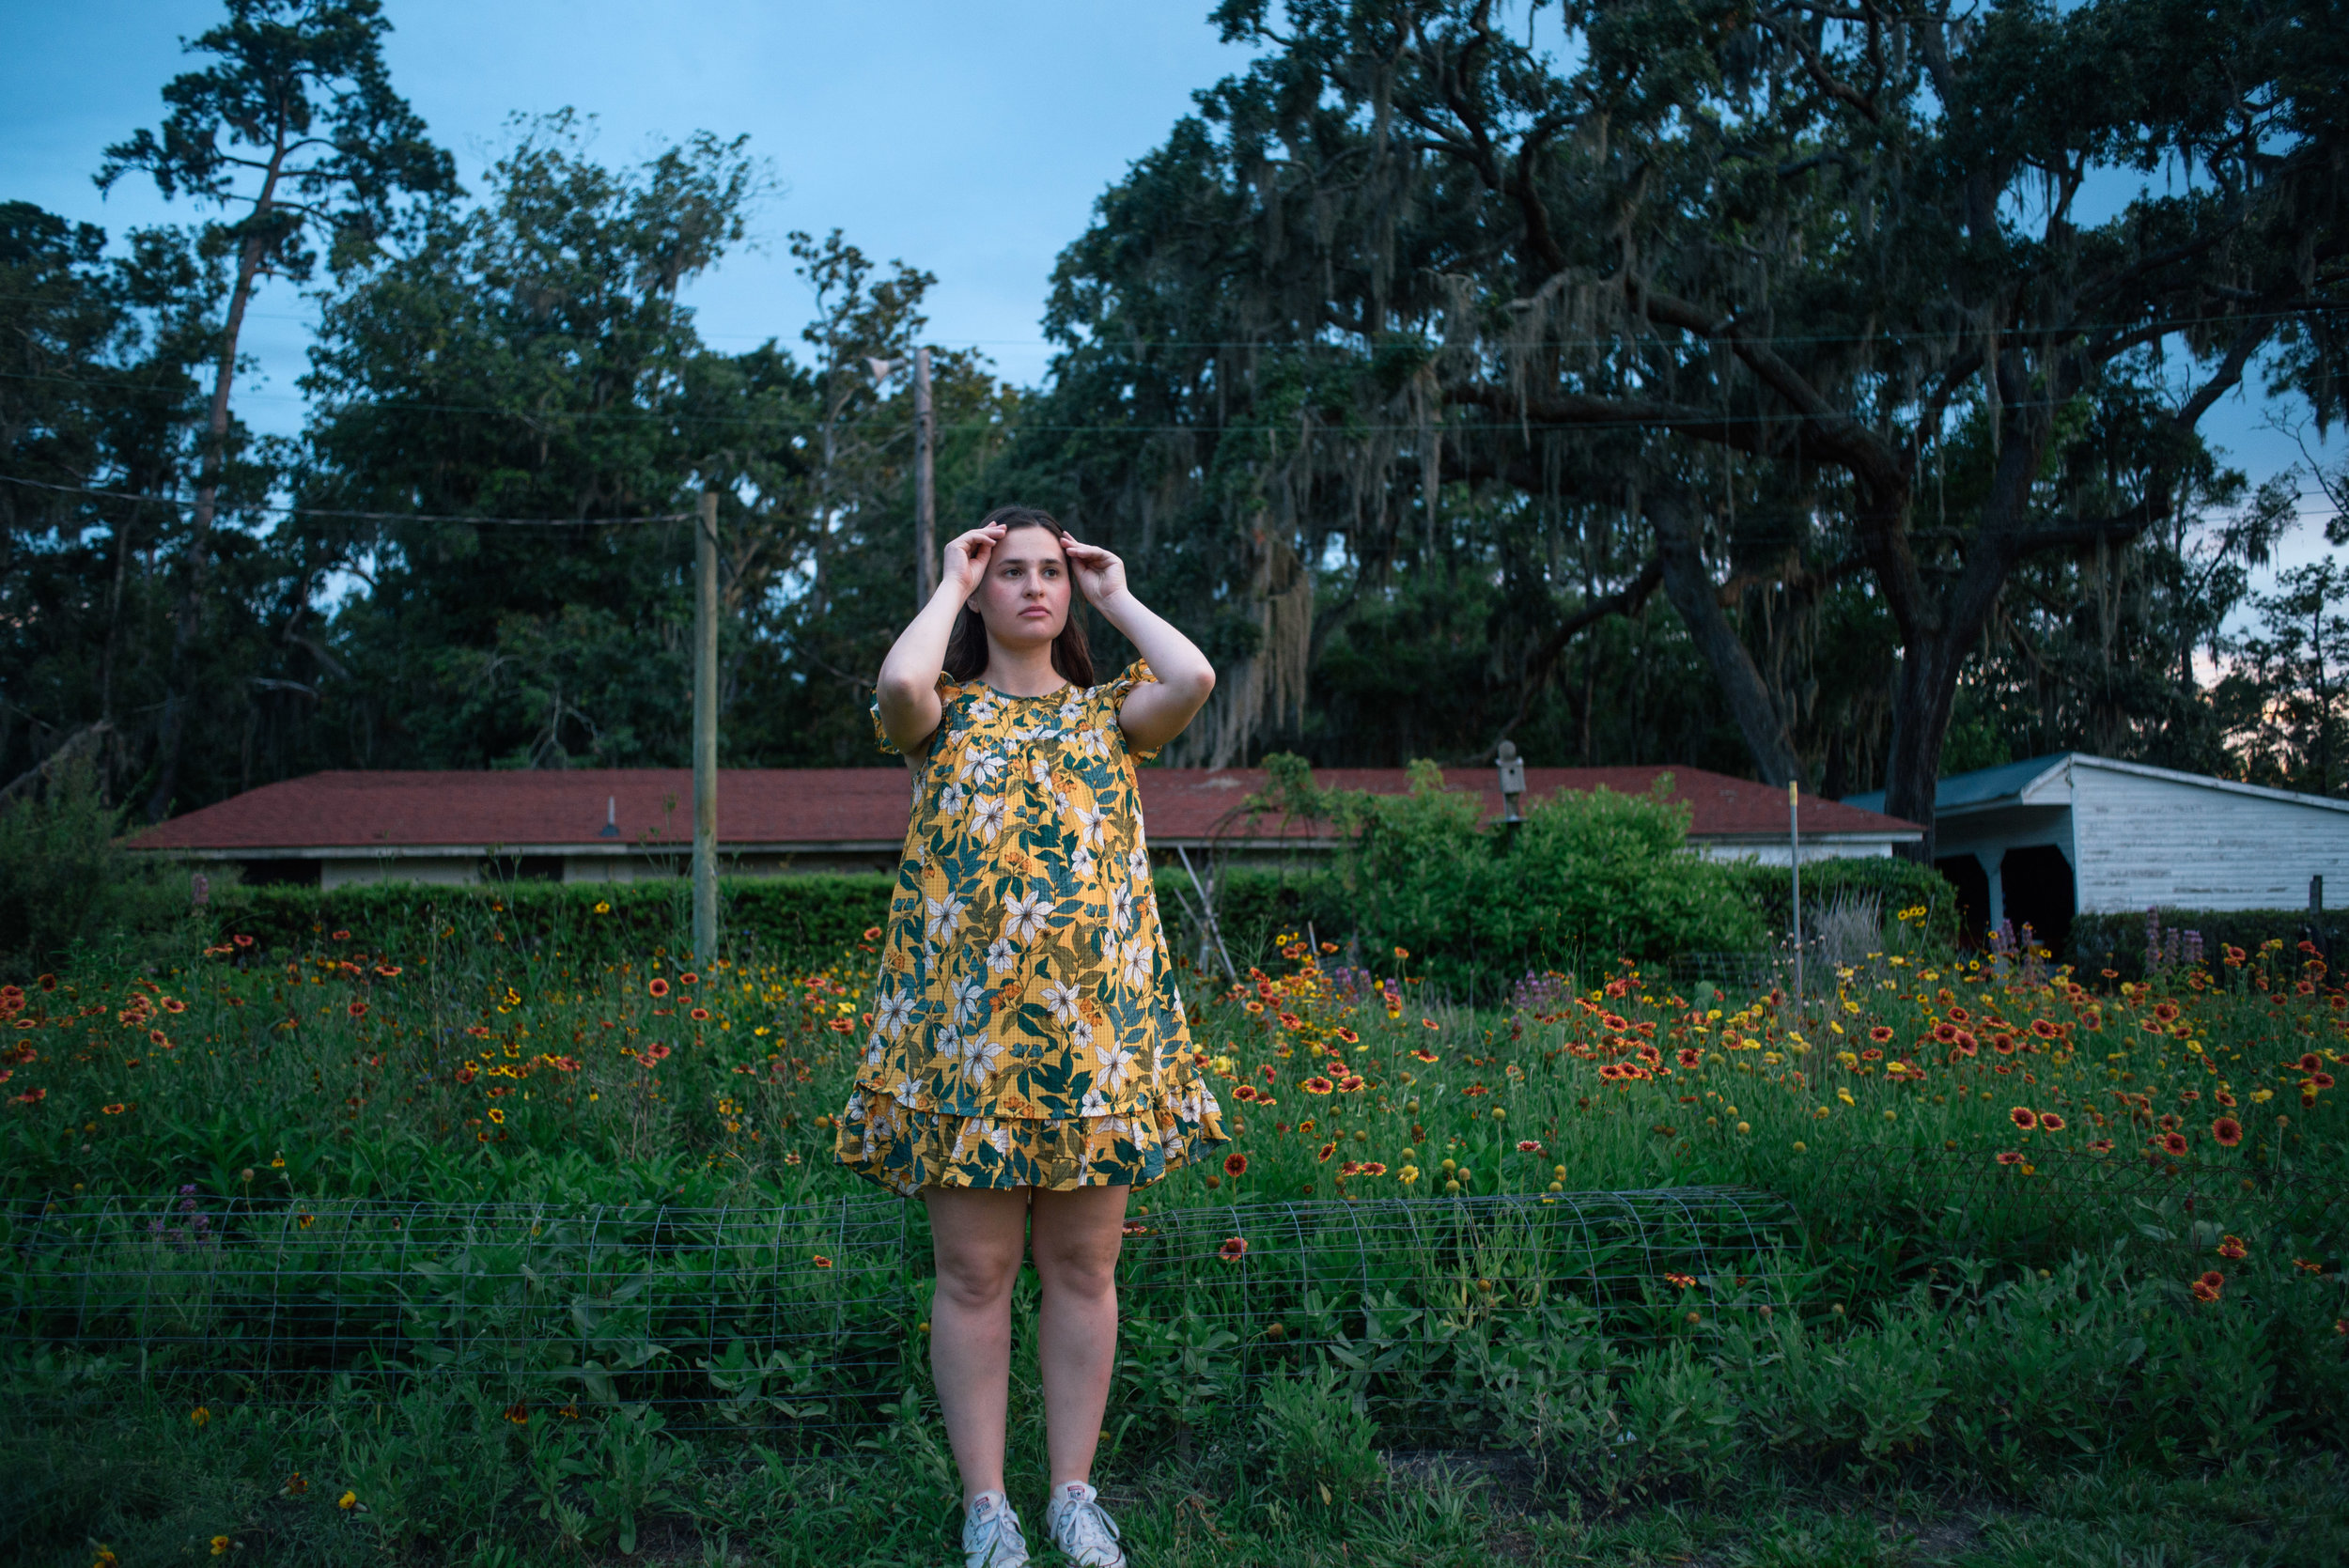 ellie-and-anthony-maternity-photos-june-2018 (178 of 189).jpg